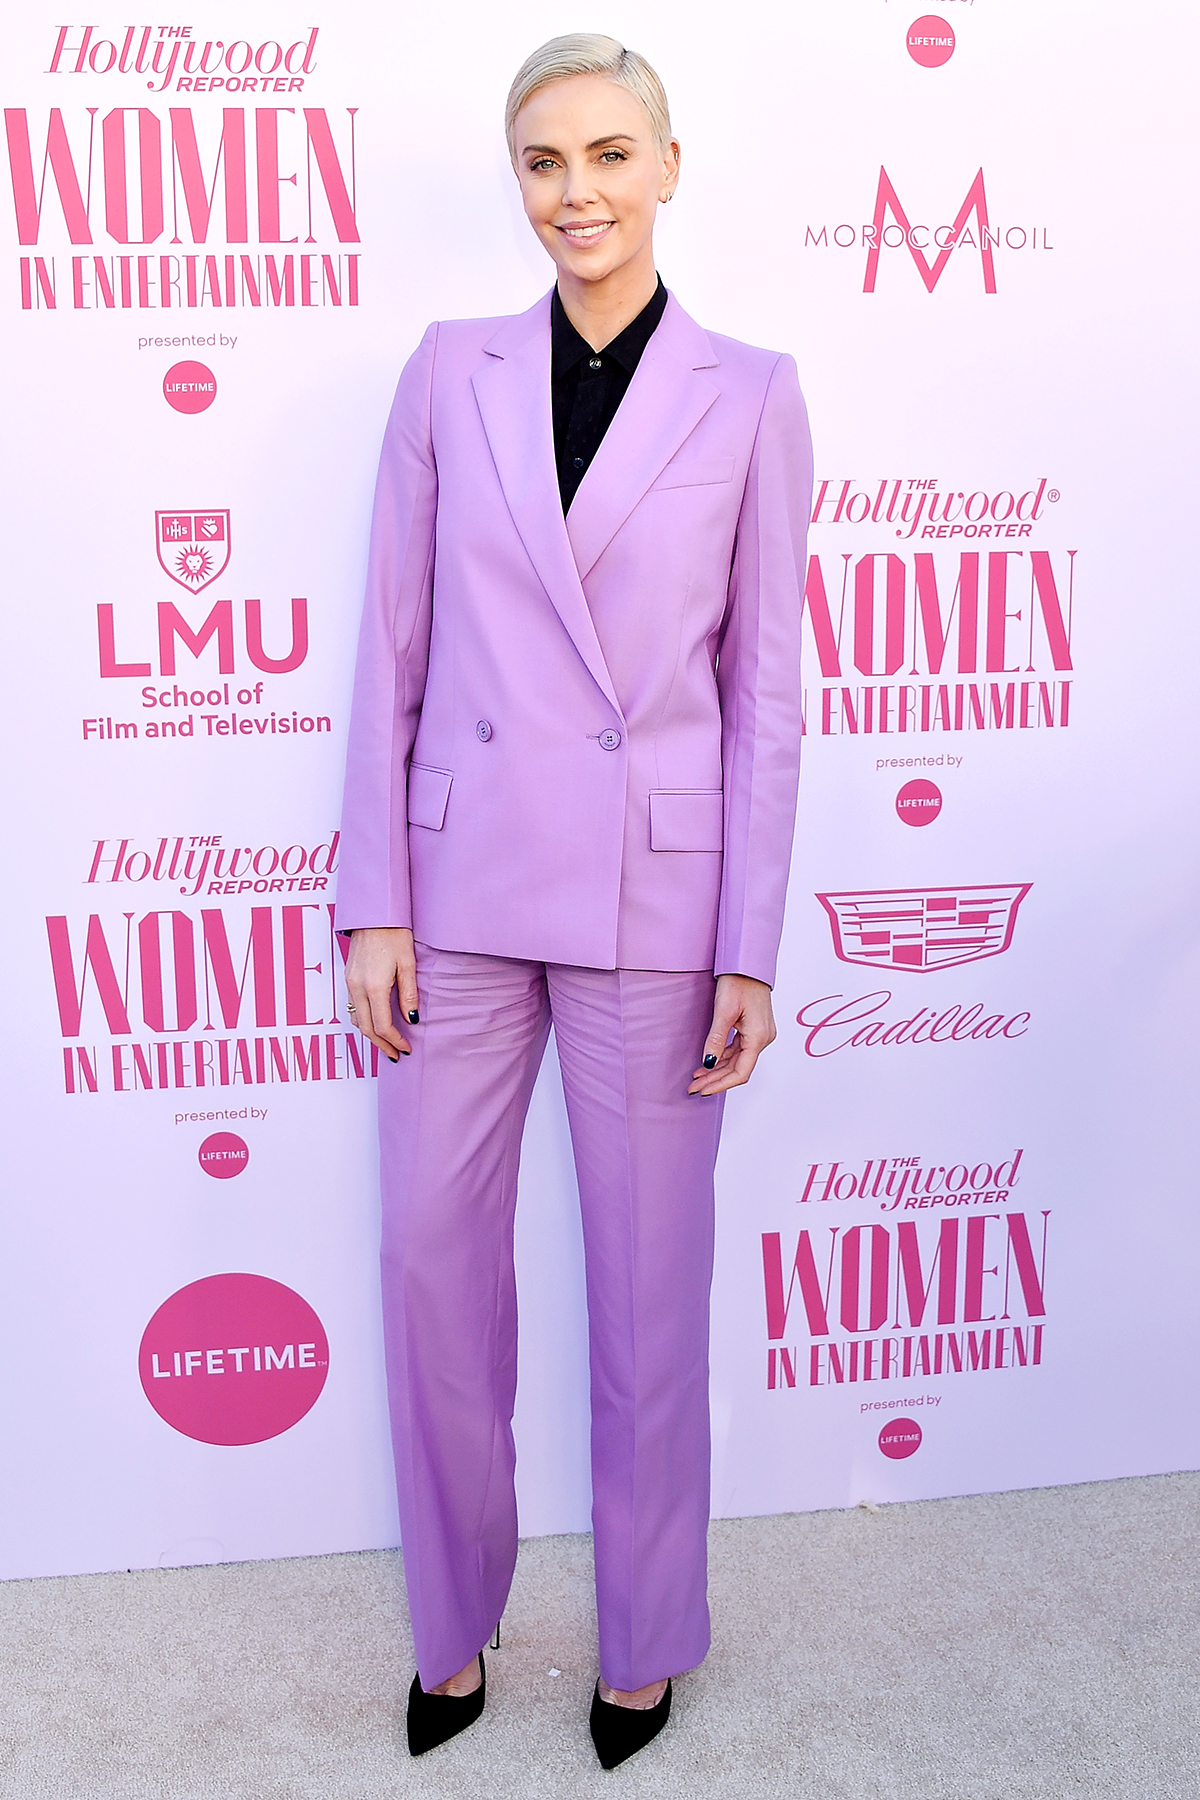 HOLLYWOOD, CA - DECEMBER 11: Charlize Theron arrives at The Hollywood Reporter's Annual Women in Entertainment Breakfast Gala at Milk Studios on December 11, 2019 in Hollywood, California.